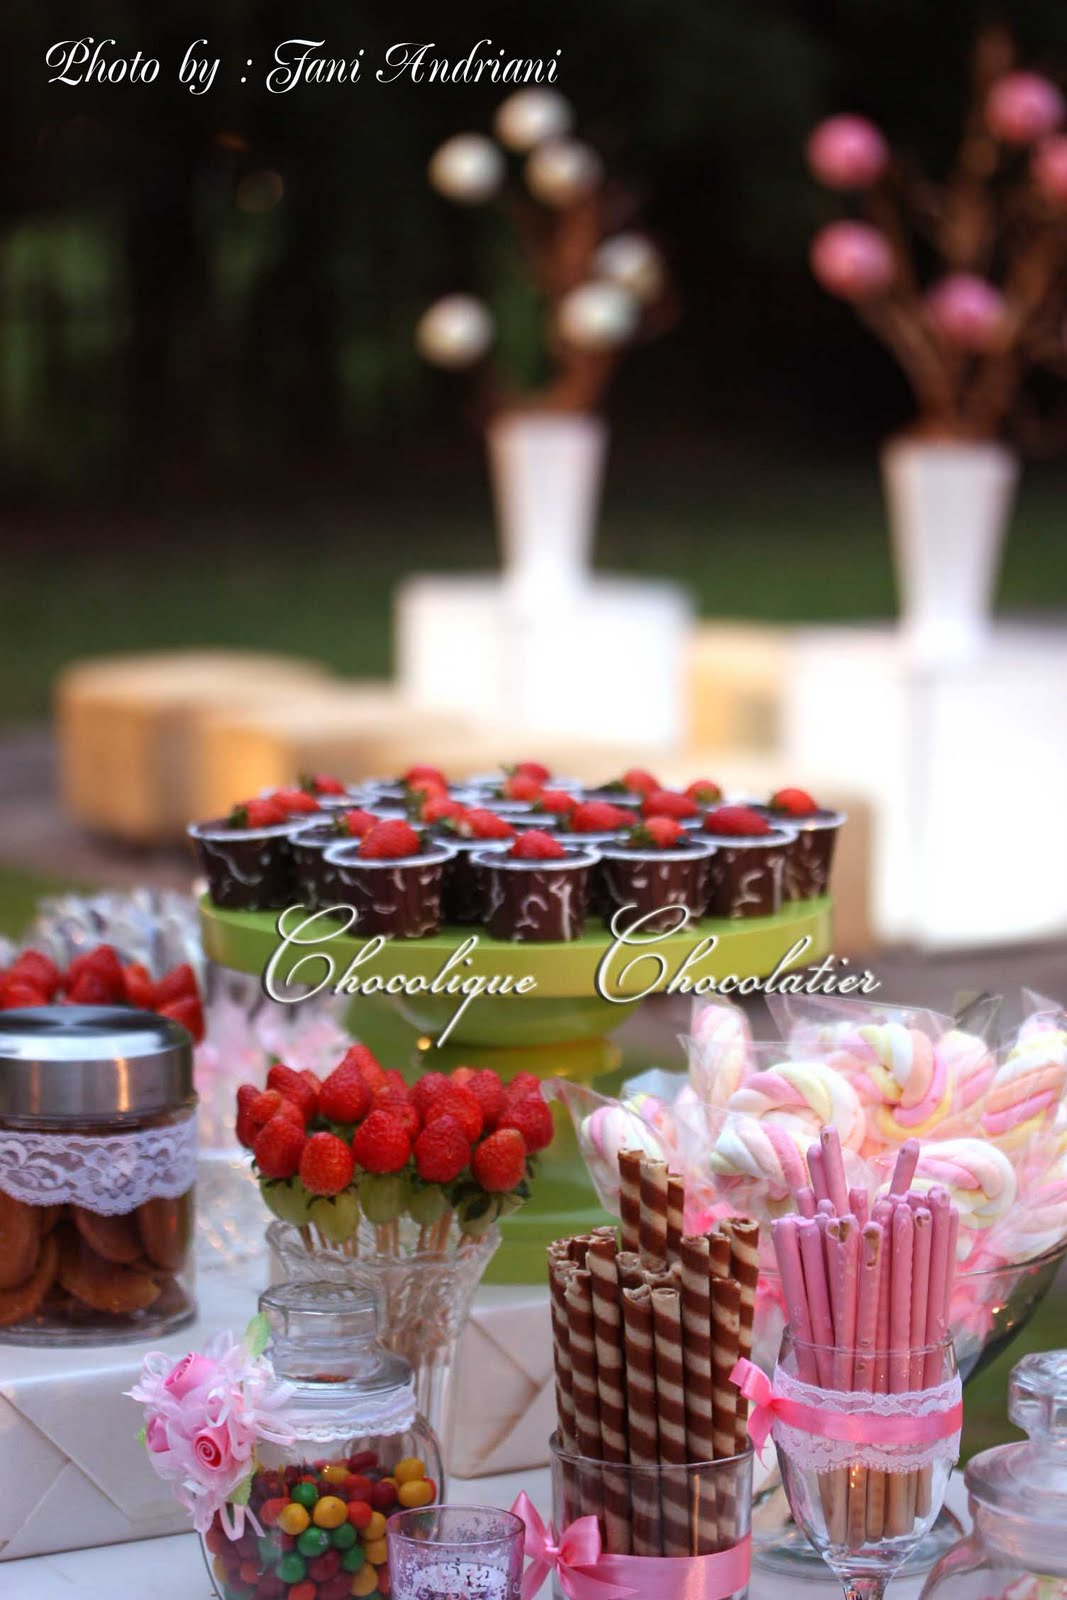 Chocolique Chocolatier Candy Bar For Hans Amp Uvicks Wedding Reception